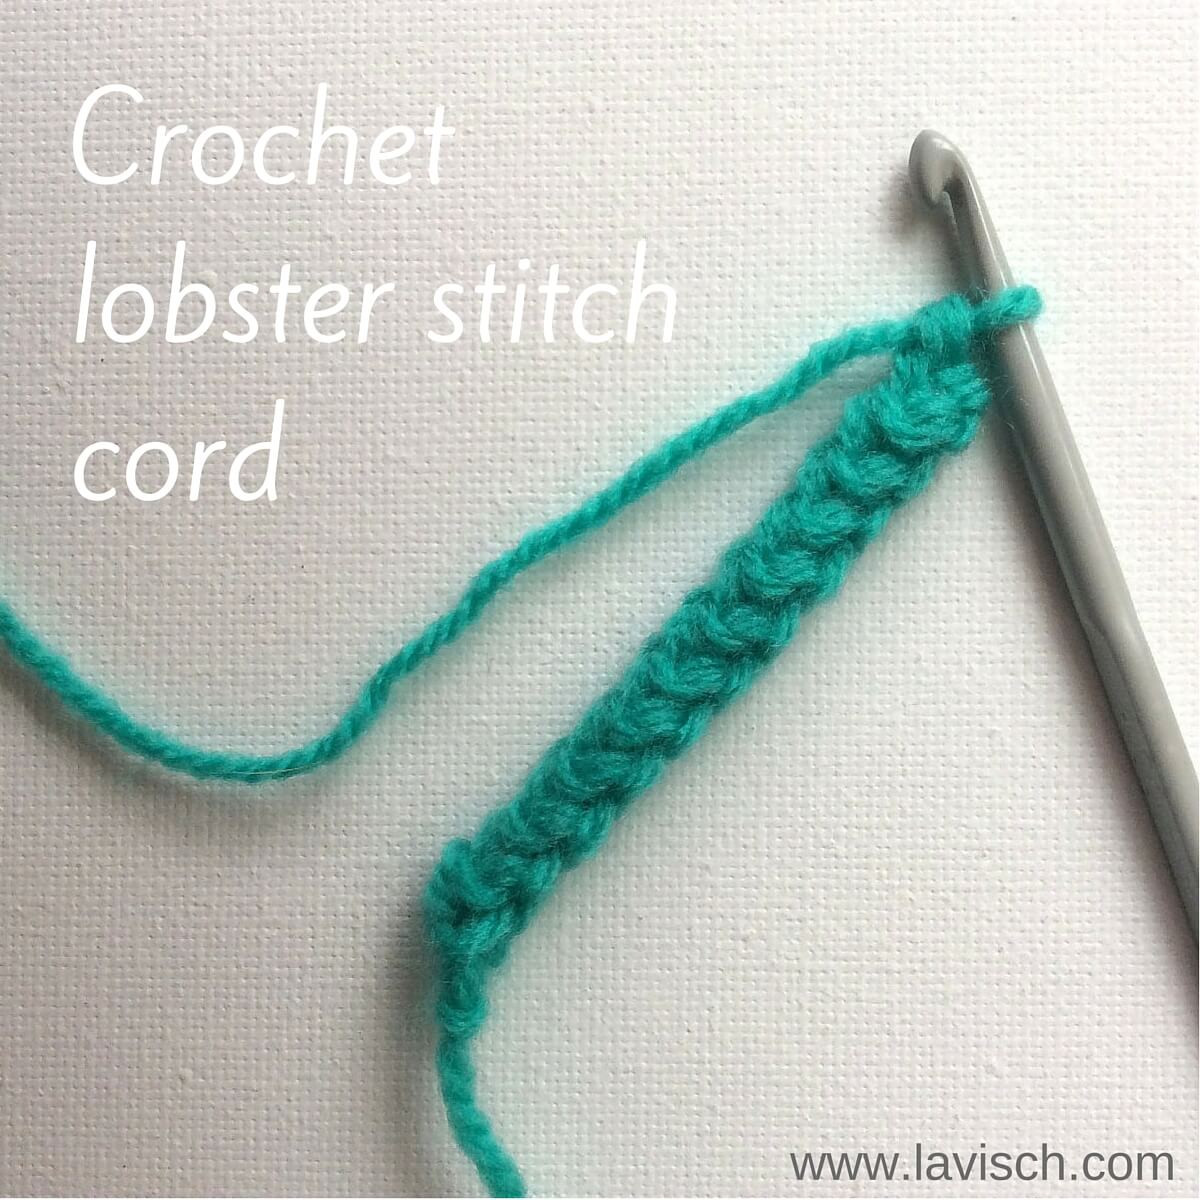 Awesome Tutorial Crochet Lobster Stitch Cord La Visch Designs Crochet Cords Of Attractive 49 Ideas Crochet Cords